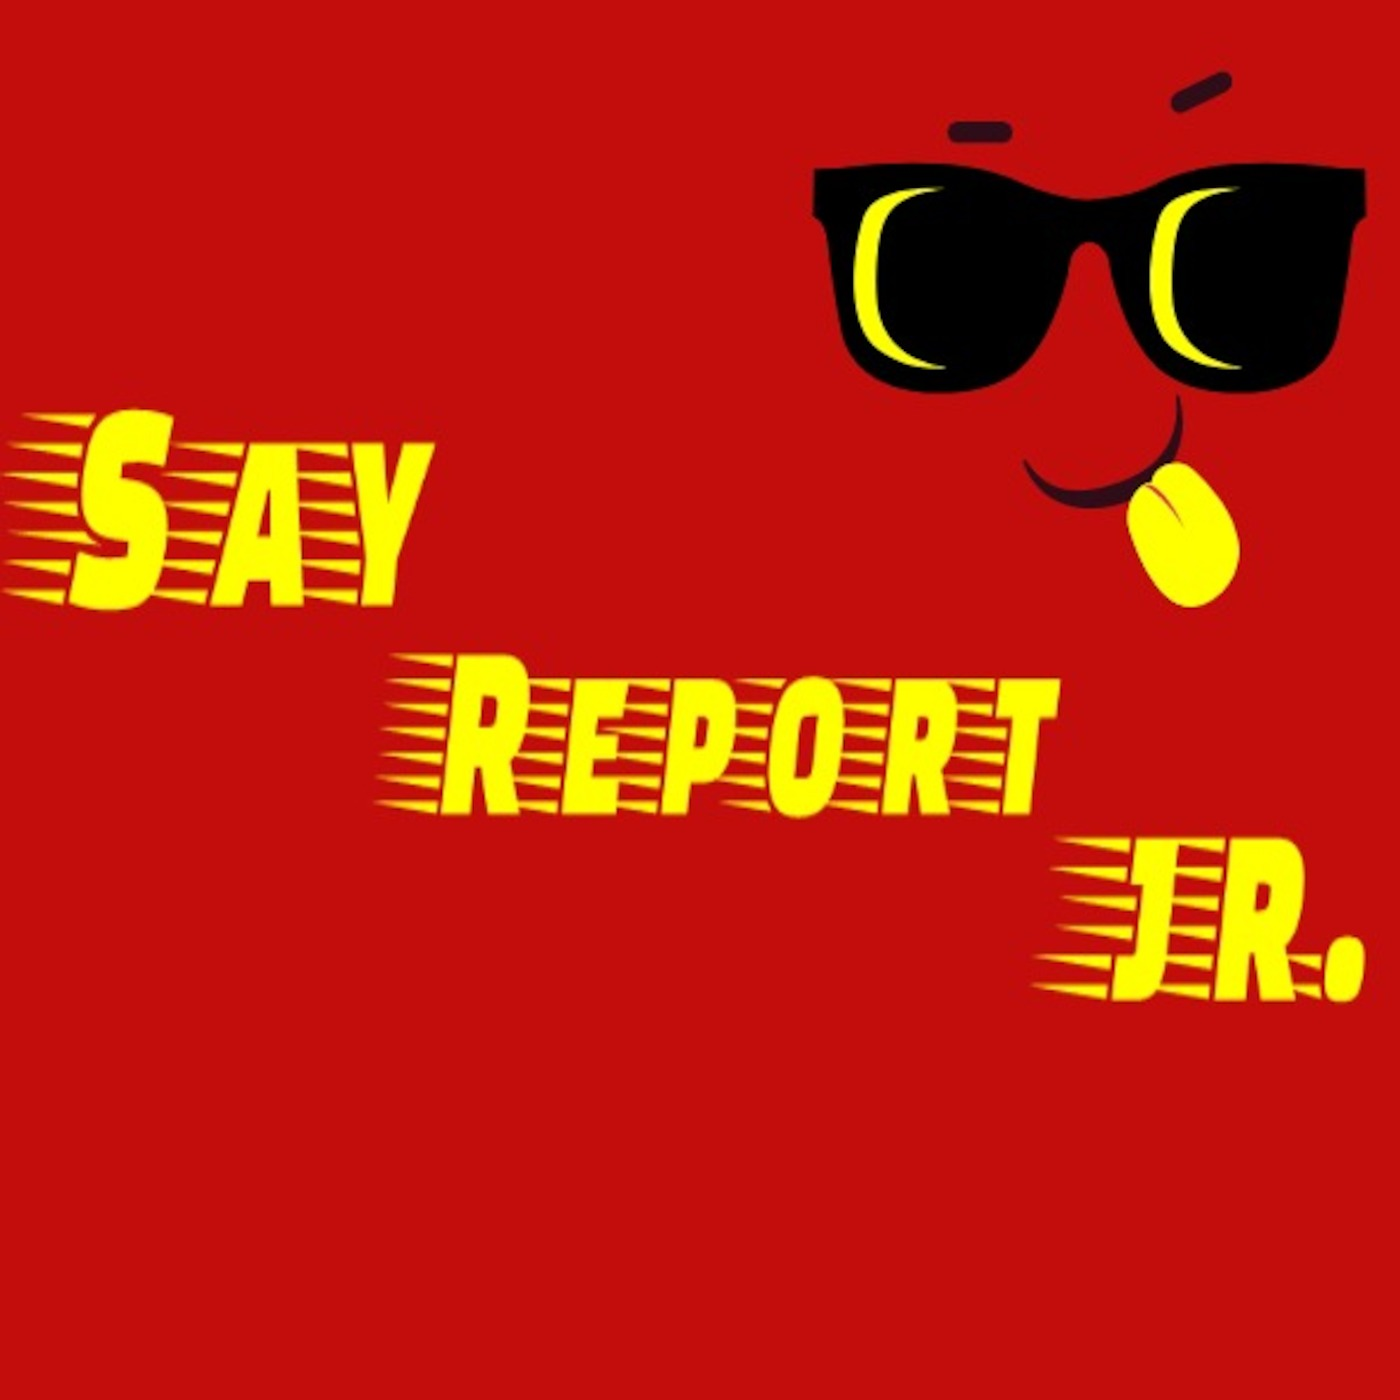 You Down With O  O  P? Say Report Jr podcast